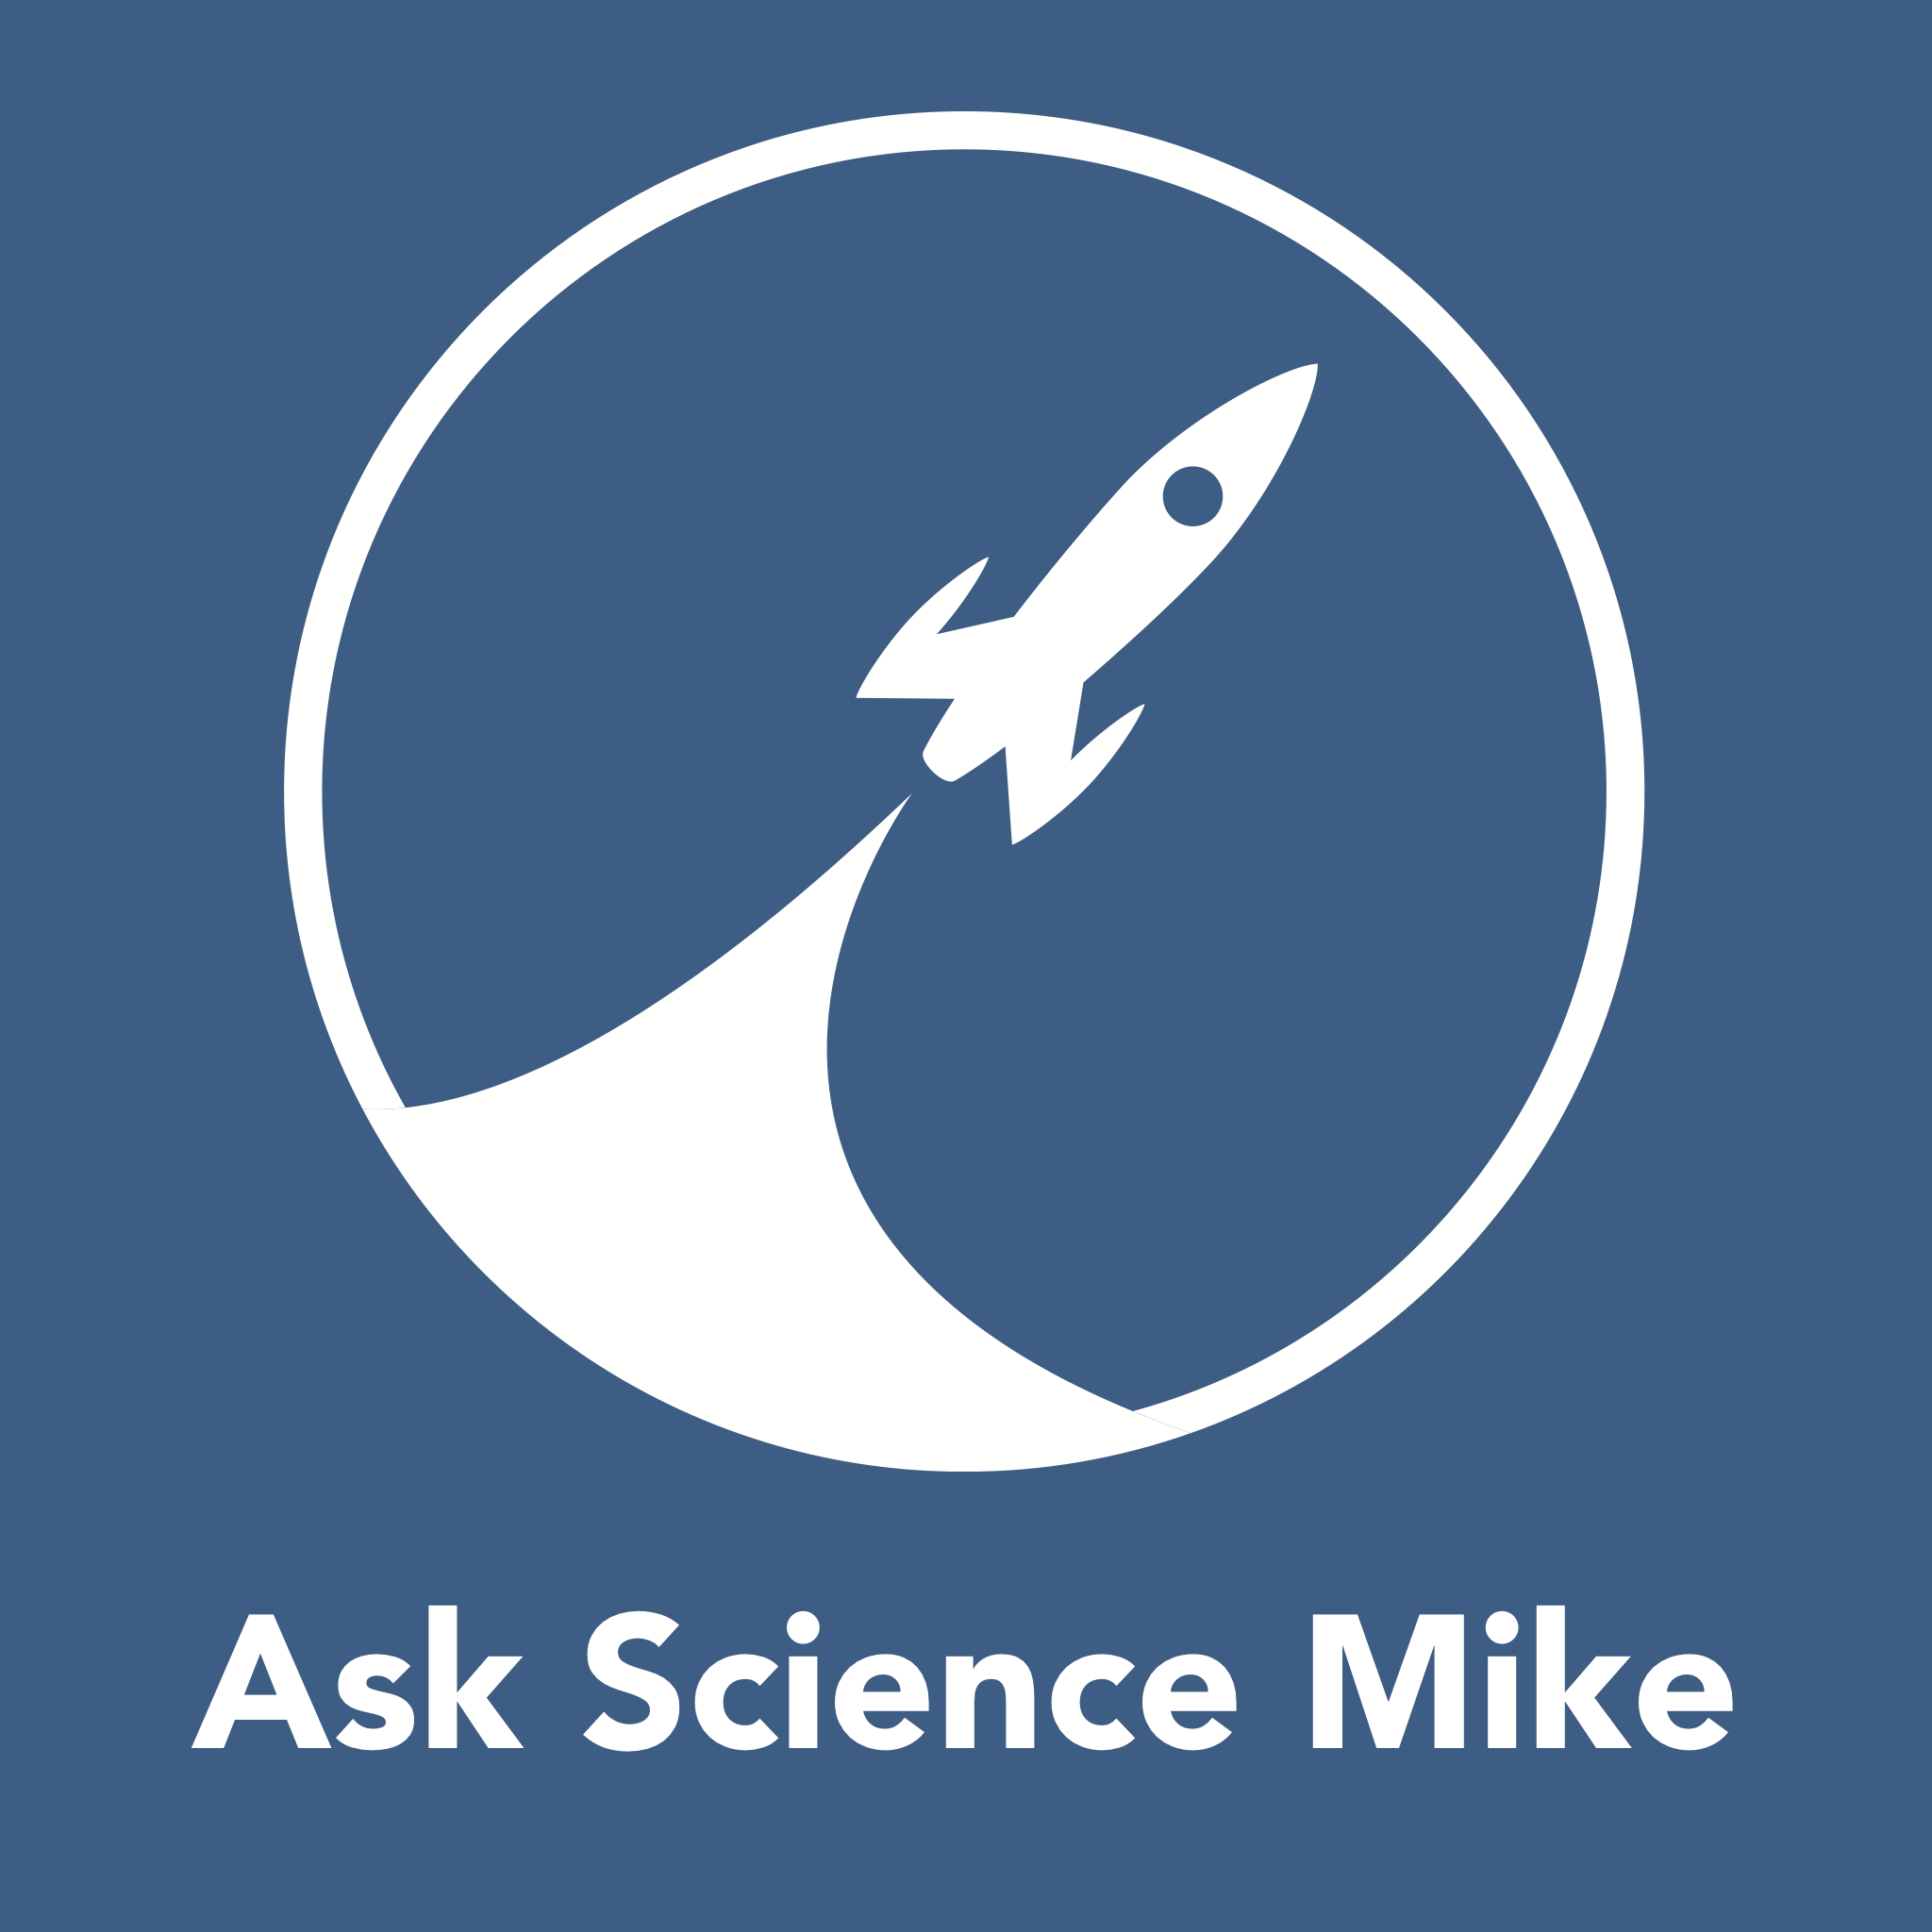 Ask Science Mike  cover art.